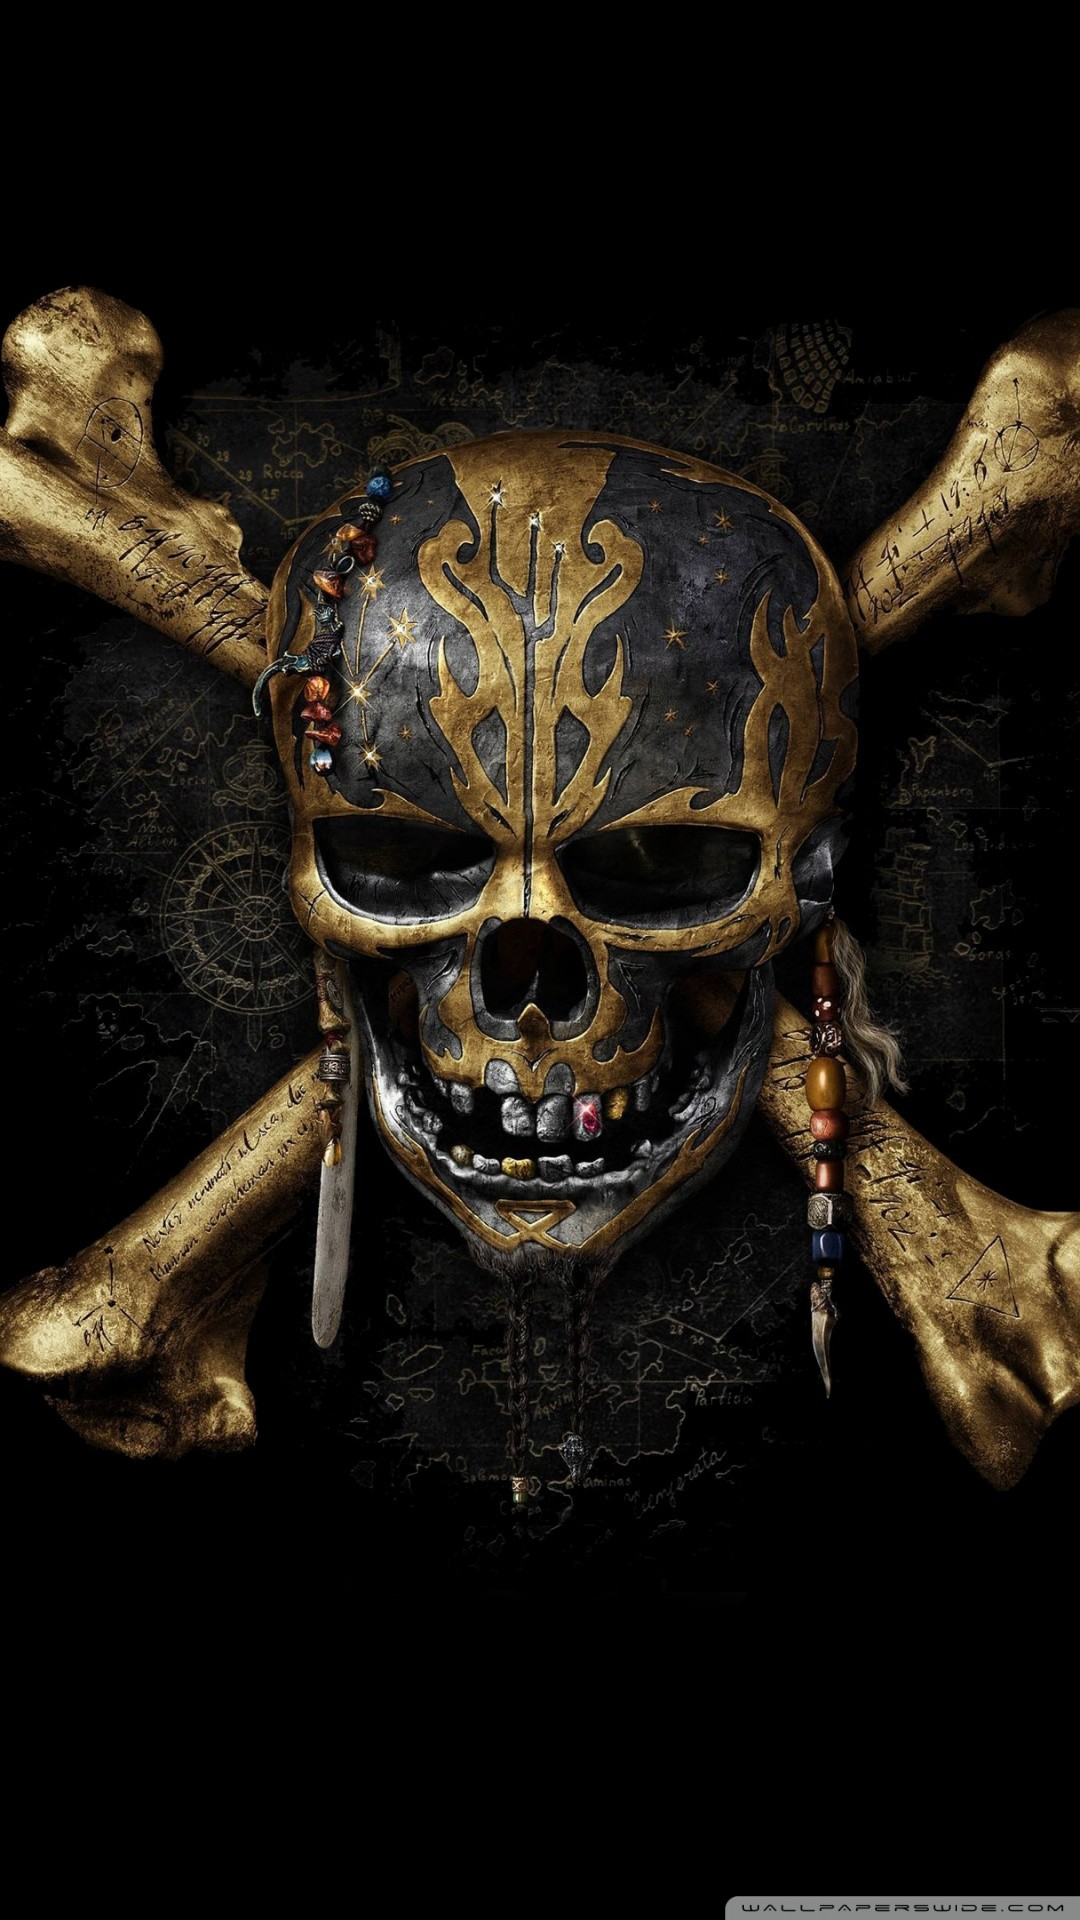 Free Pirates of the Caribbean Dead Men Tell No Tales phone wallpaper by sediqa